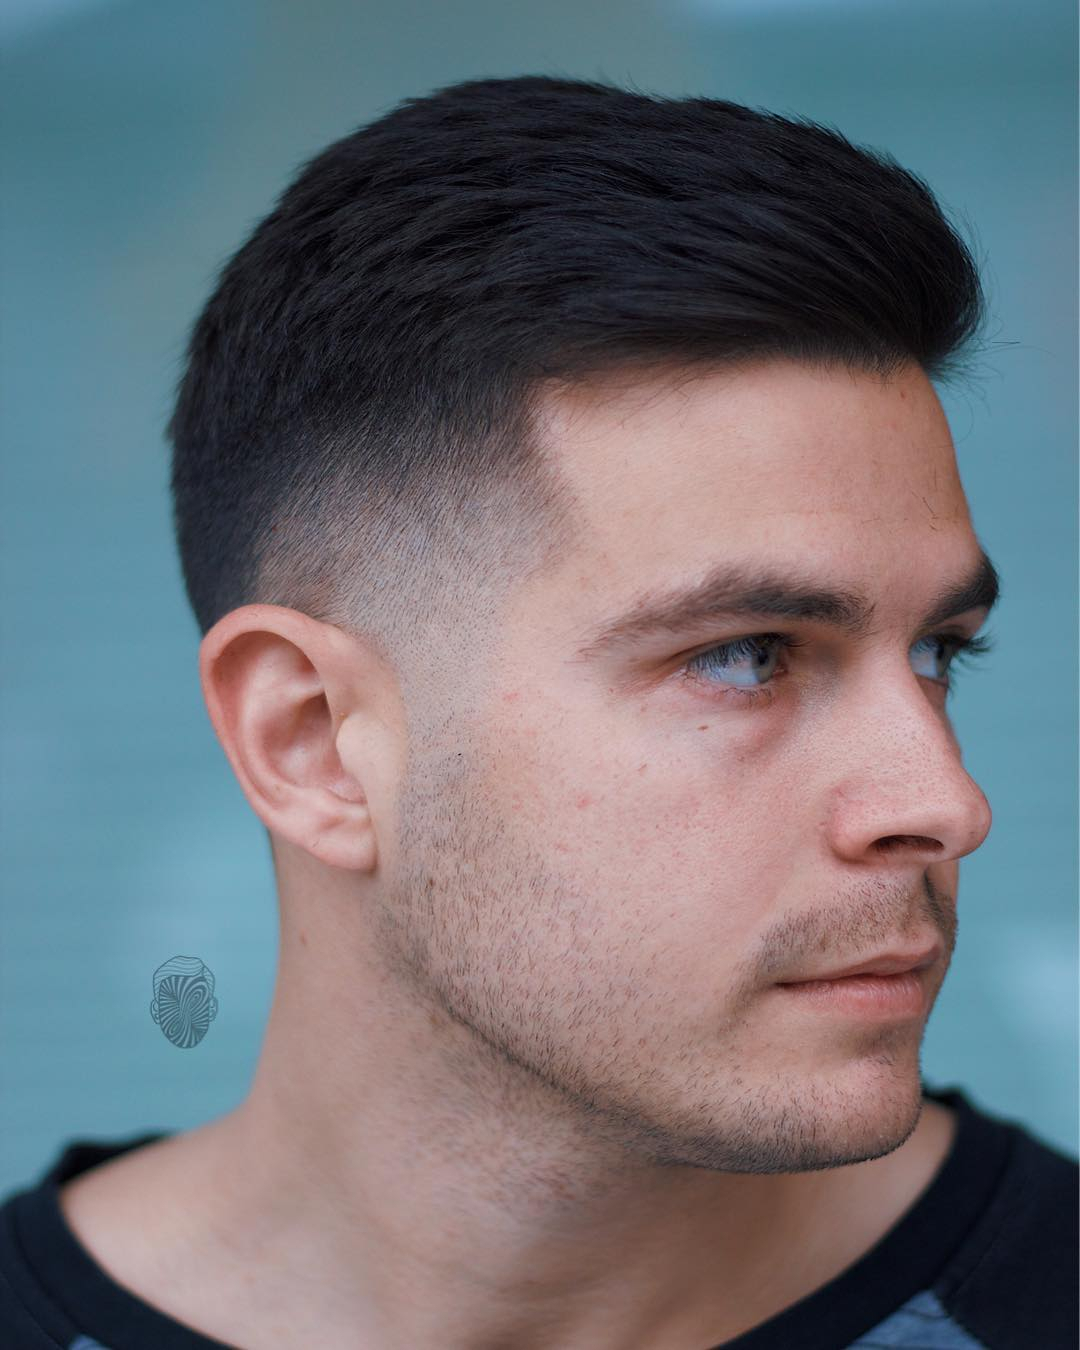 Imágenes De Gallery Of Mens Short Hairstyles Inside Short To Medium Hairstyles For Men (View 25 of 25)